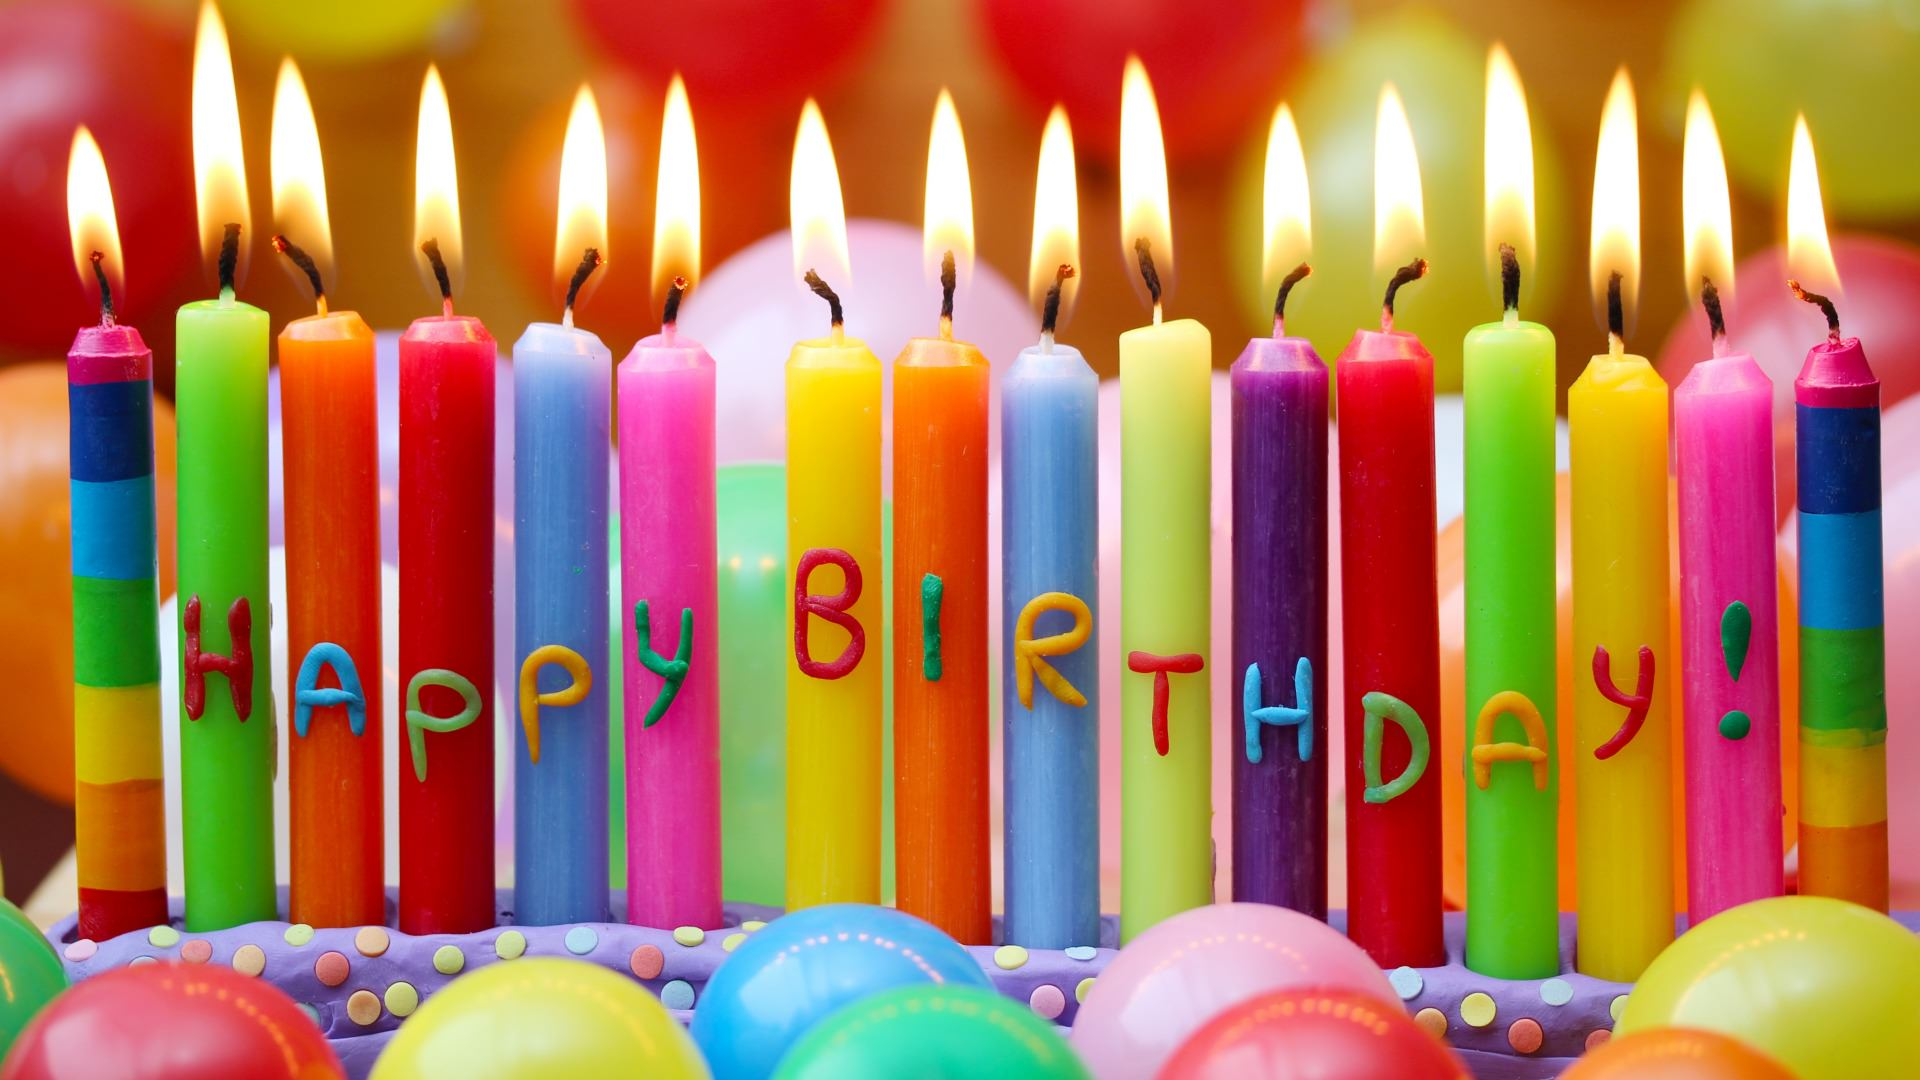 Happy birthday background designs candle